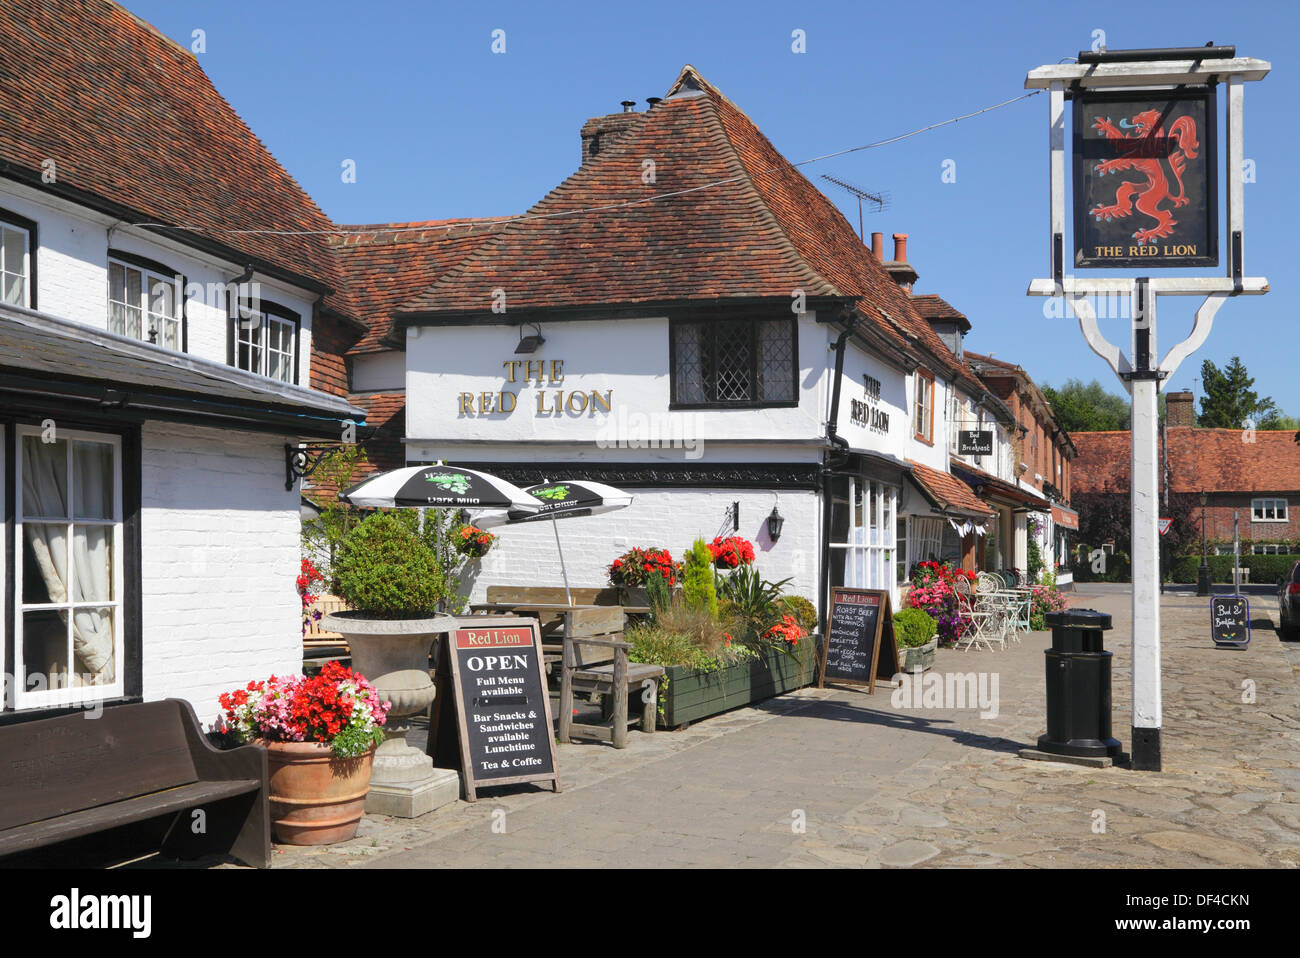 A traditional village pub in Biddenden, Kent. The Red Lion Pub and The Bakehouse Tea Rooms, England, UK, GB - Stock Image